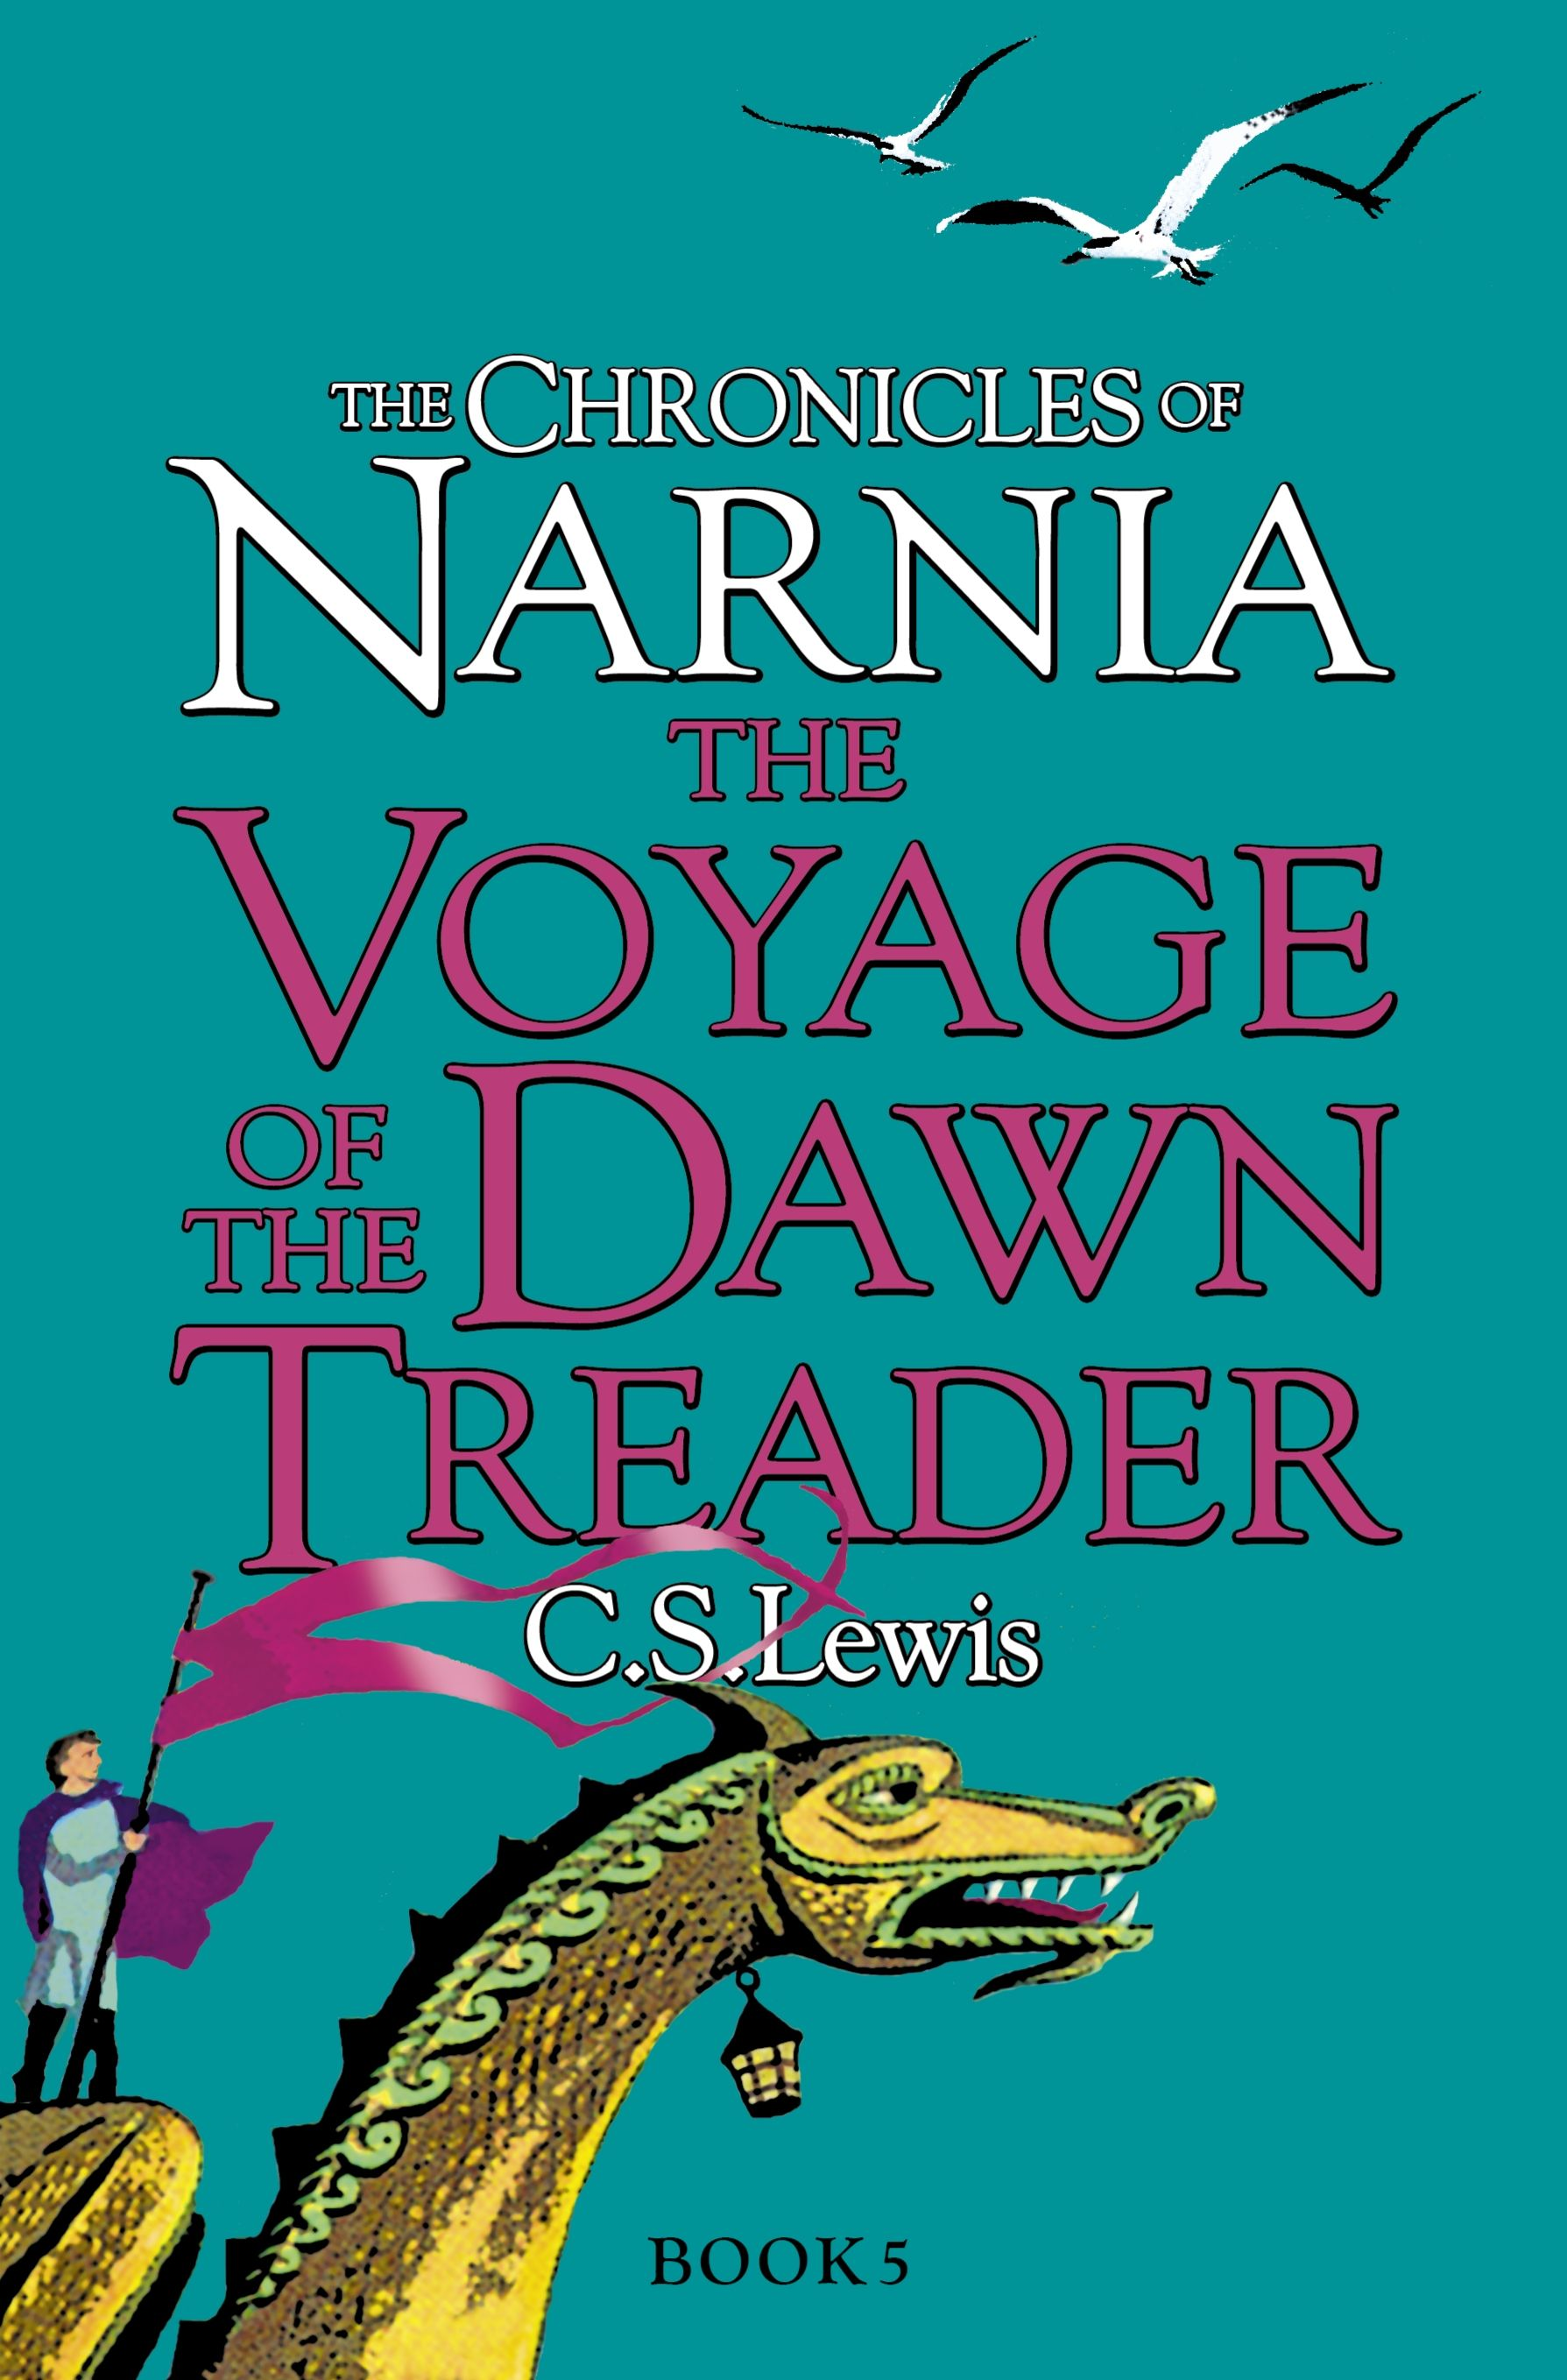 The Voyage Of The Dawn Treader Uk Paperback Edition With Cover